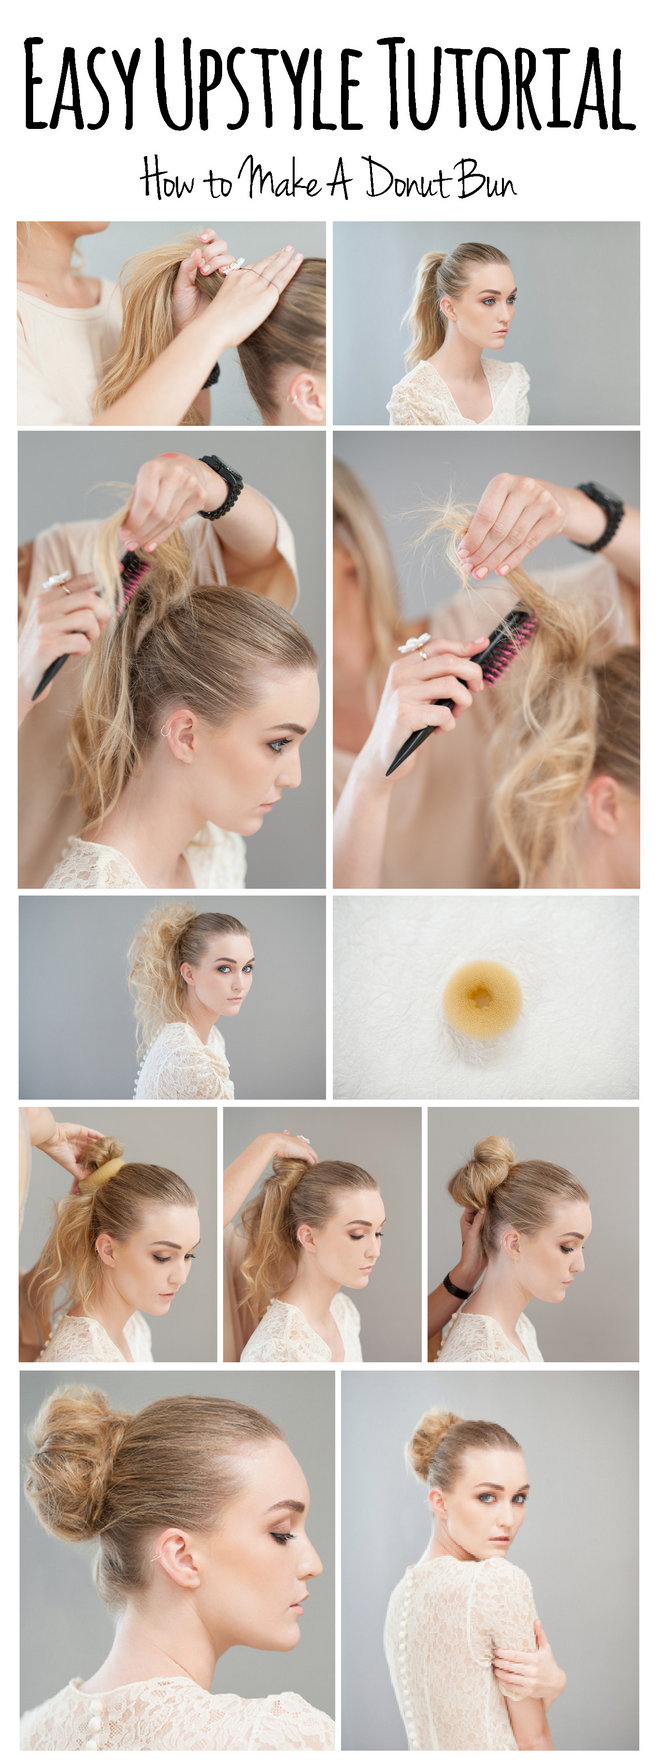 Surprising How To Make A Donut Bun By Lisa Brown St Photography Short Hairstyles For Black Women Fulllsitofus